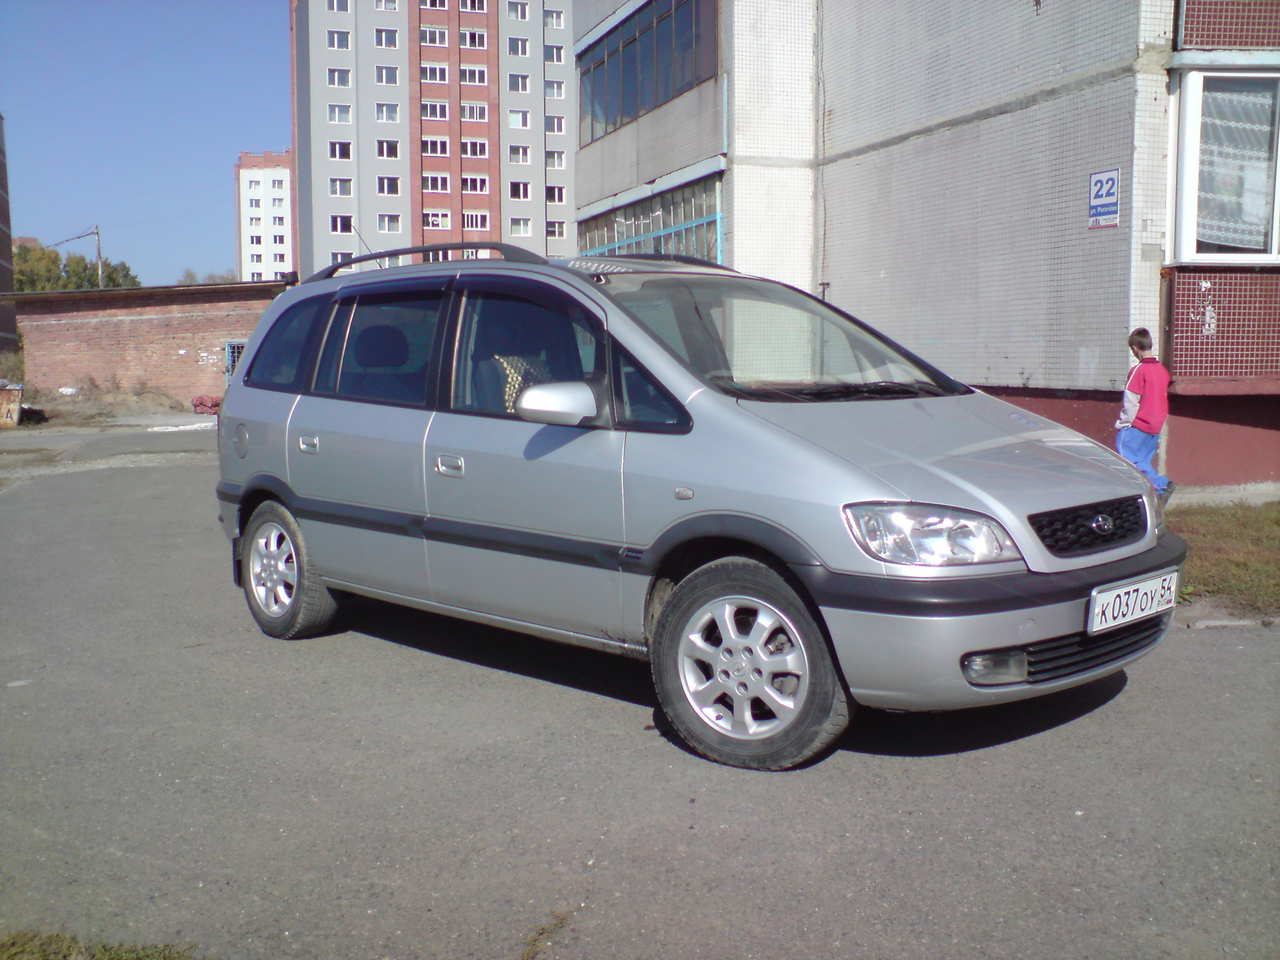 2005 Subaru Traviq #2